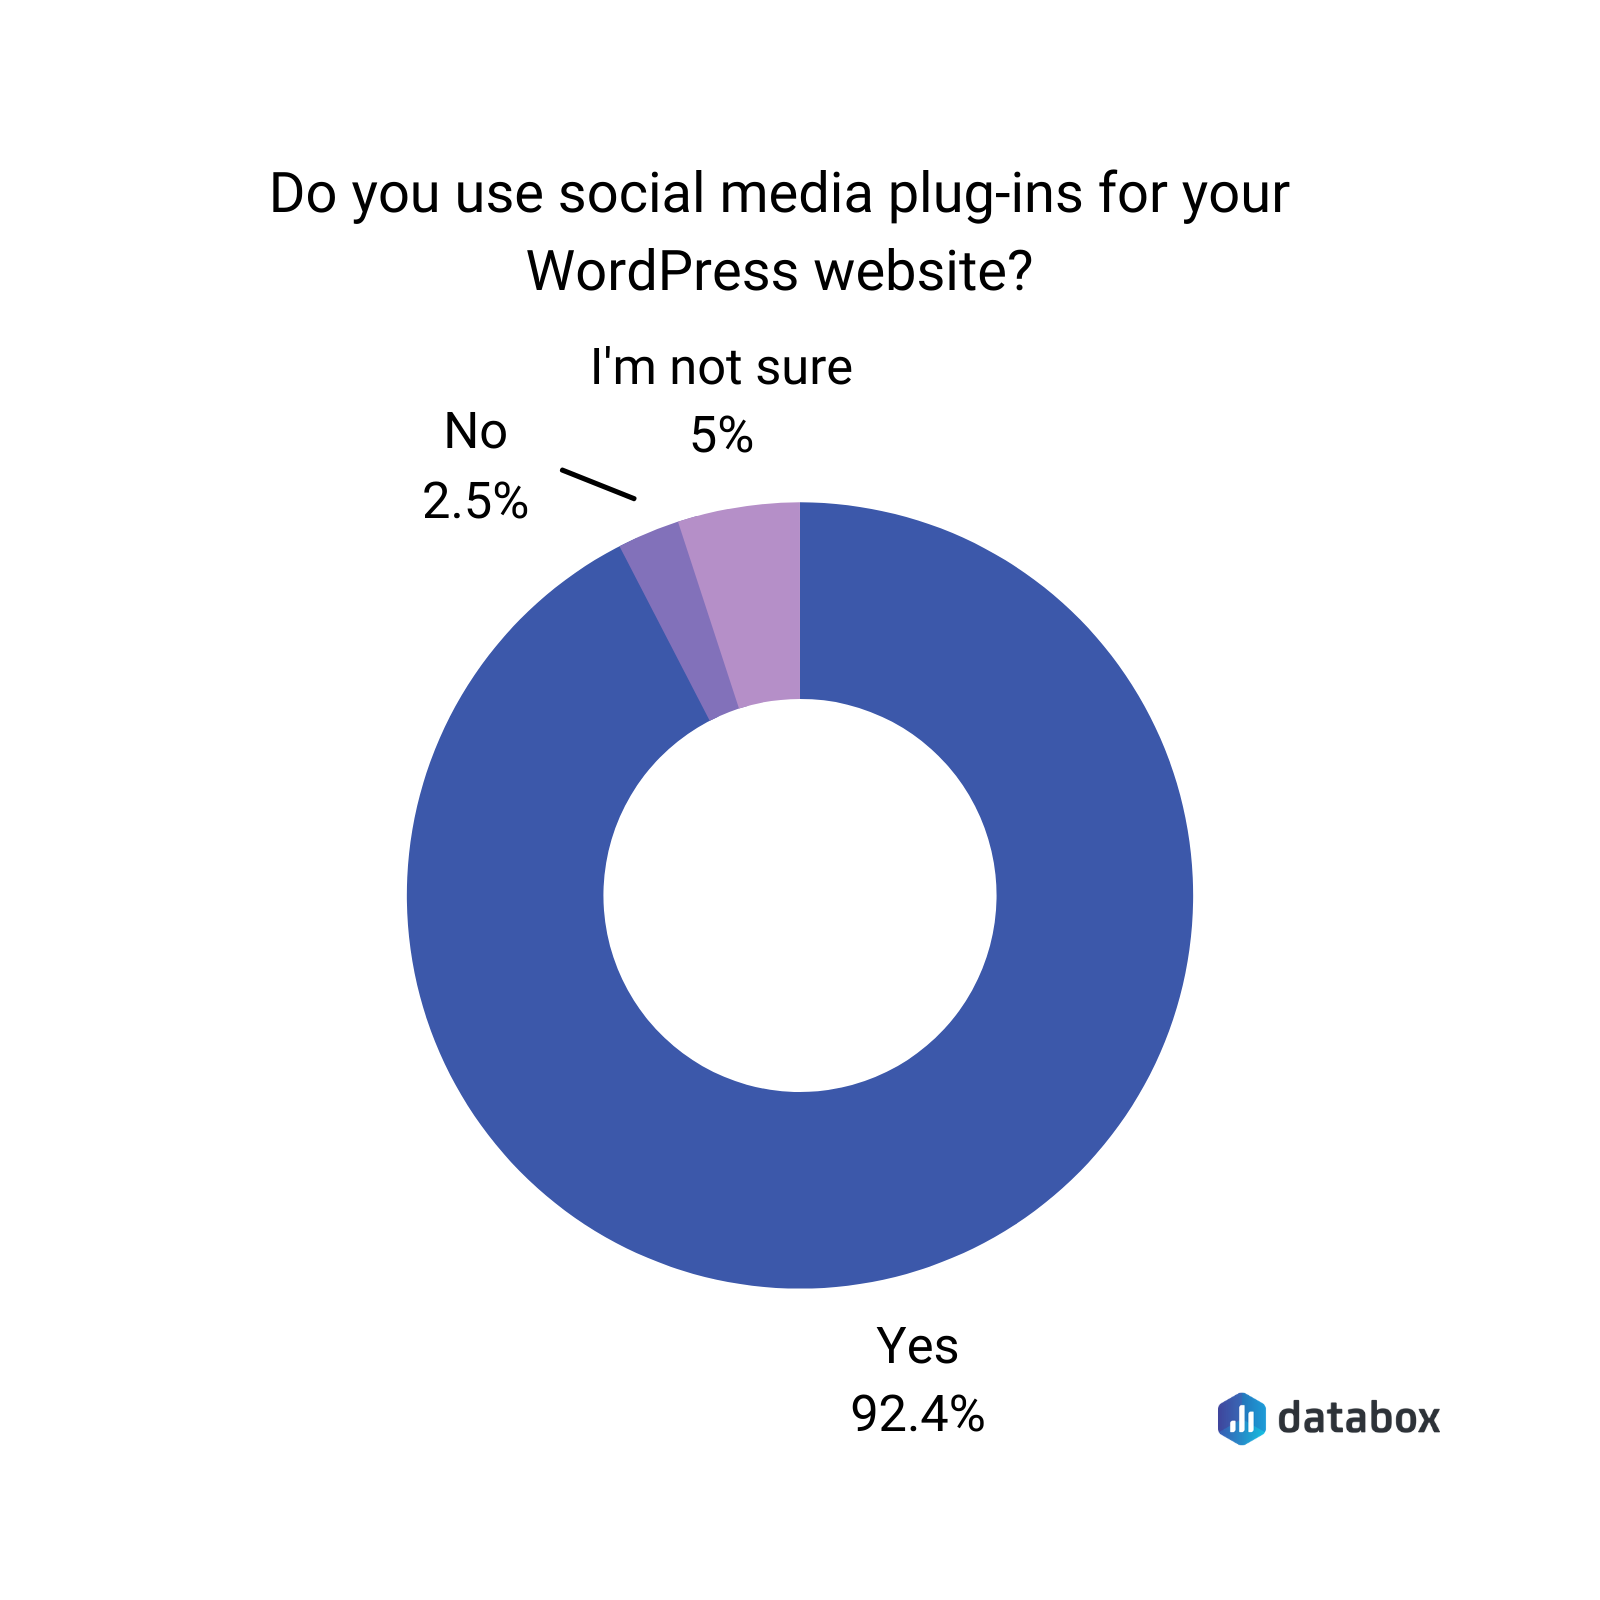 do you use social media plugins for your WordPress website